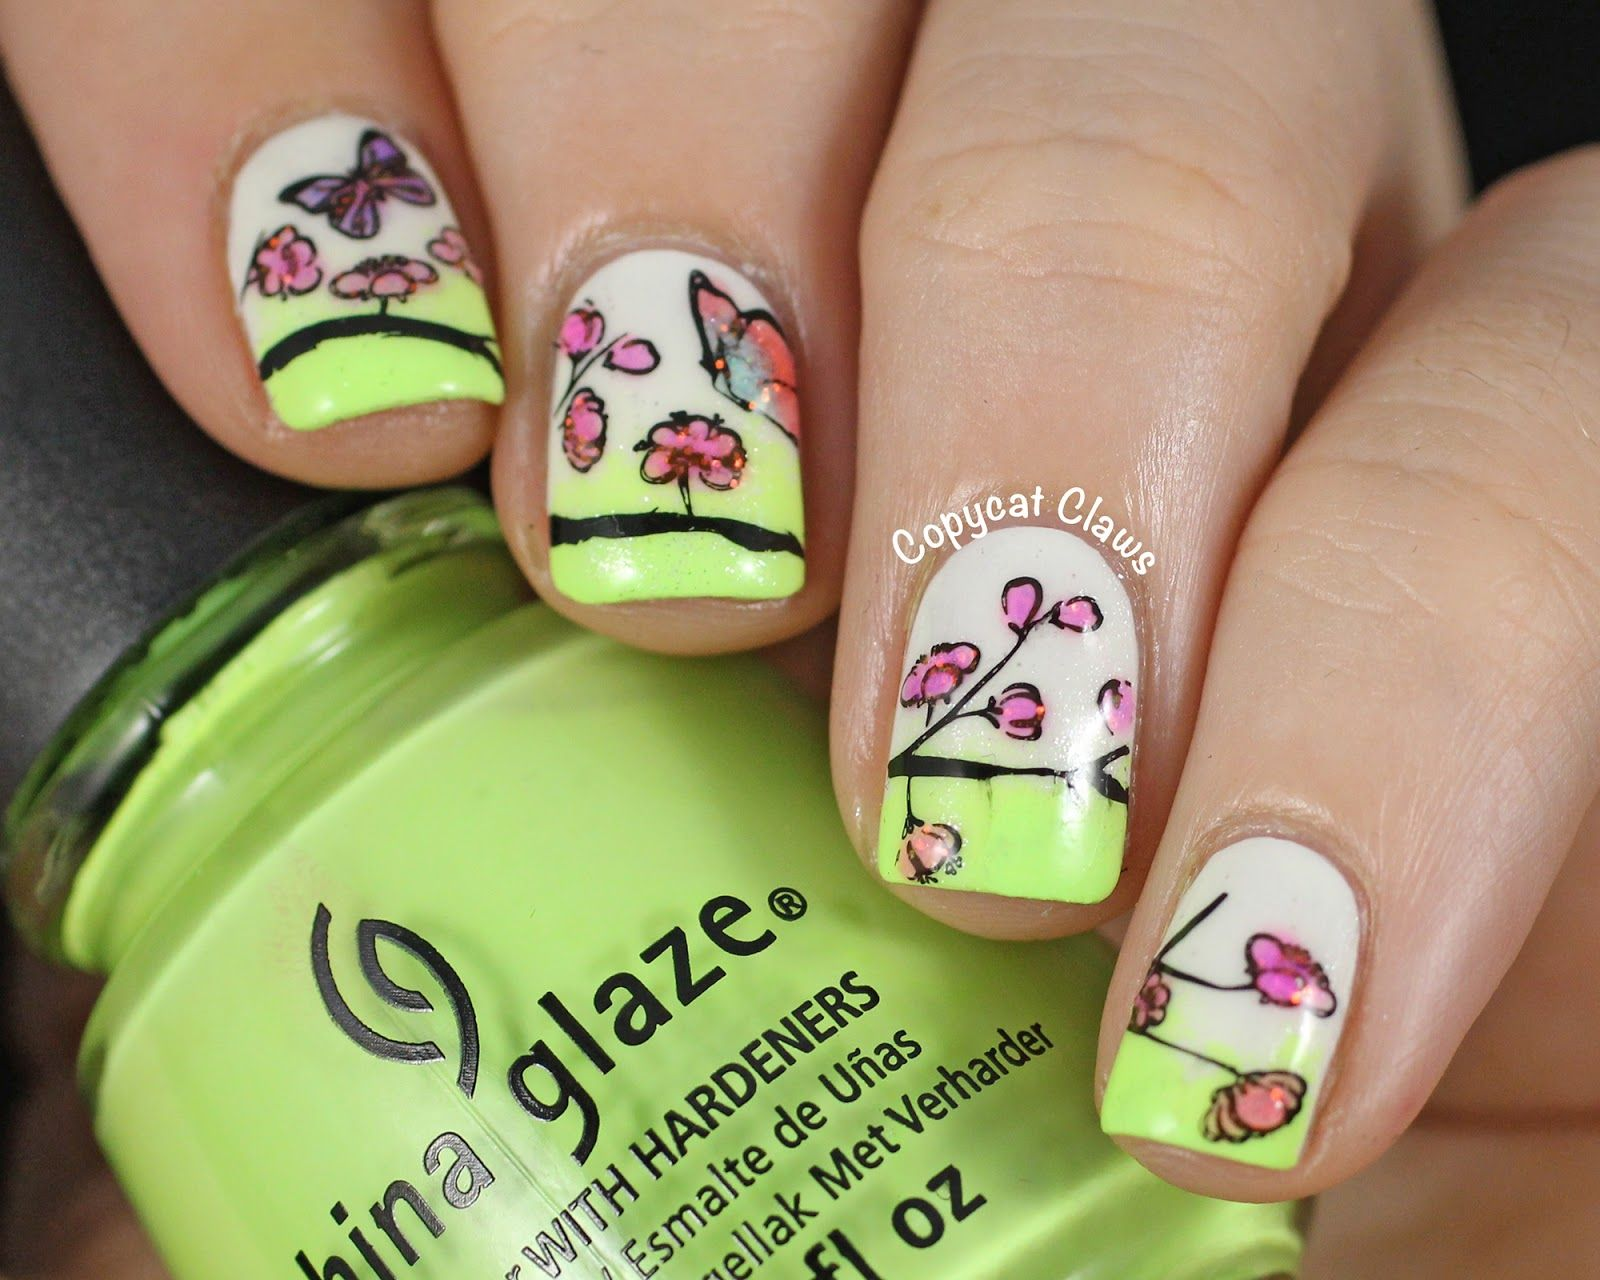 Copycat Claws: Sunday Stamping - Spring Nails | Manis: stamp | Pinterest